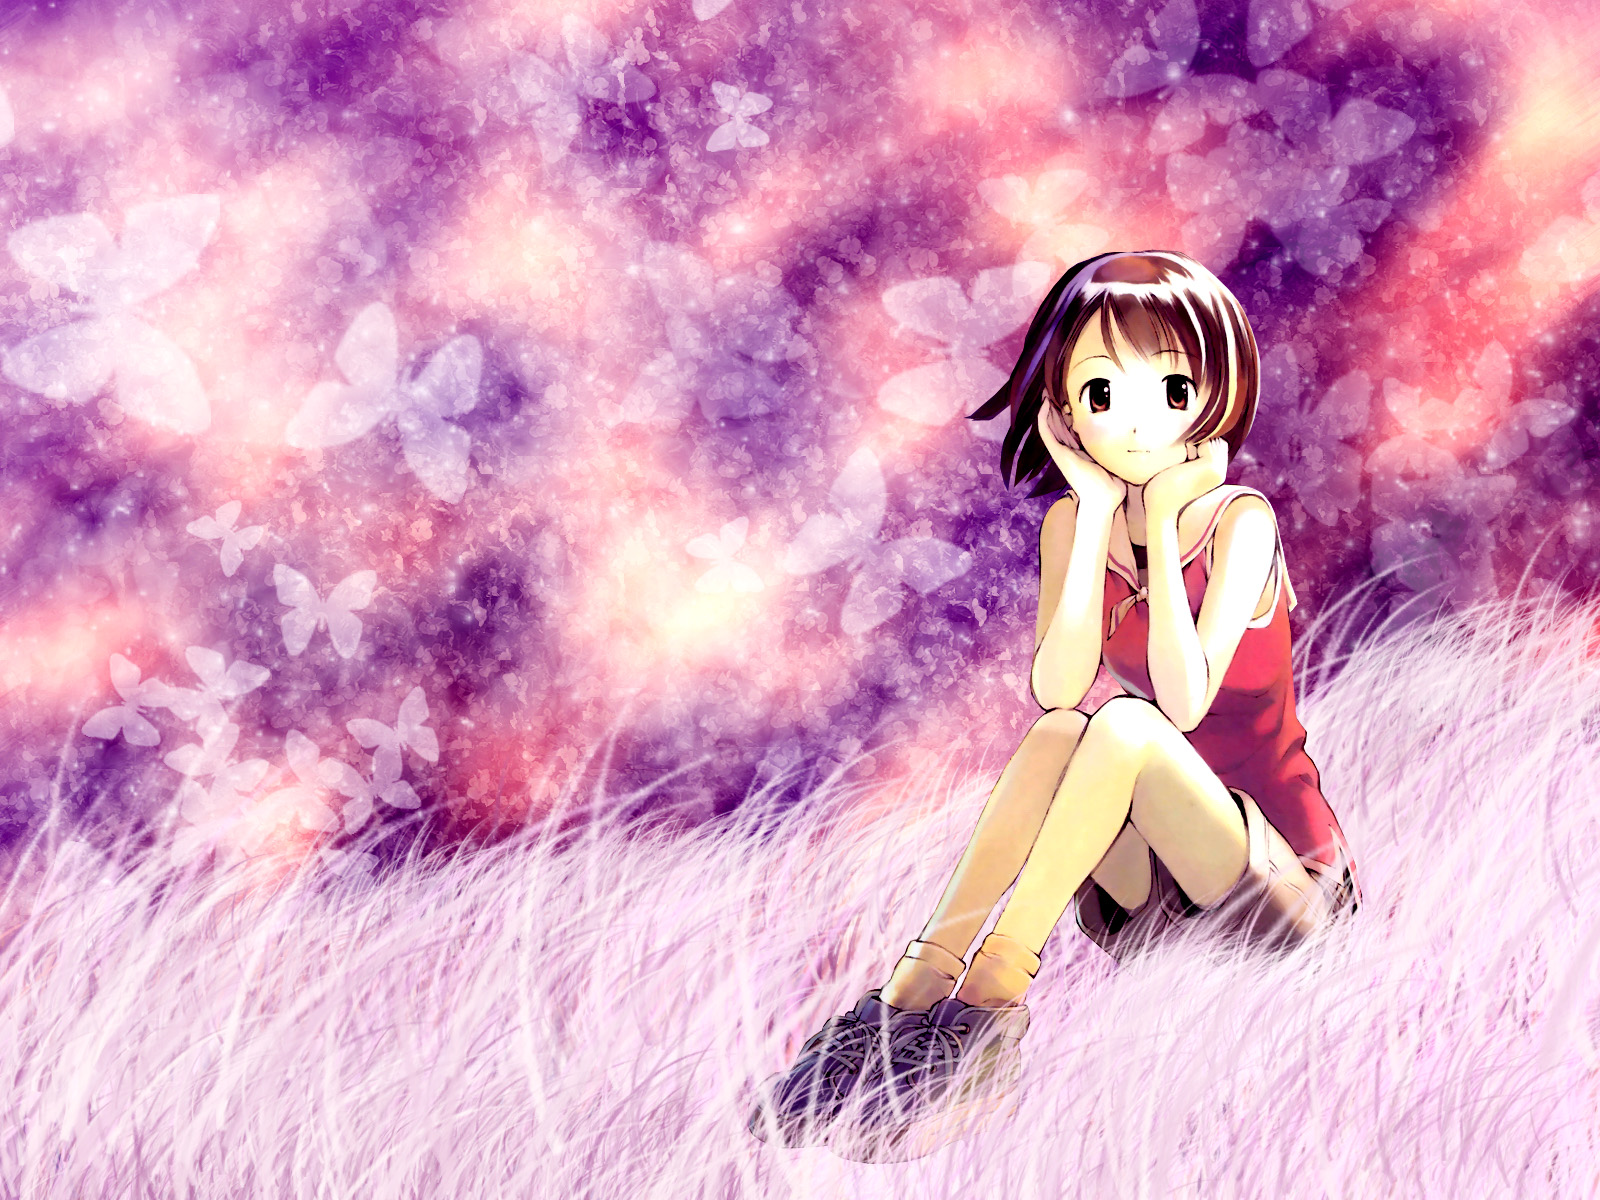 Anime Girls Wallpapers Hd Pictures   Cute Desktop Background Anime 1600x1200